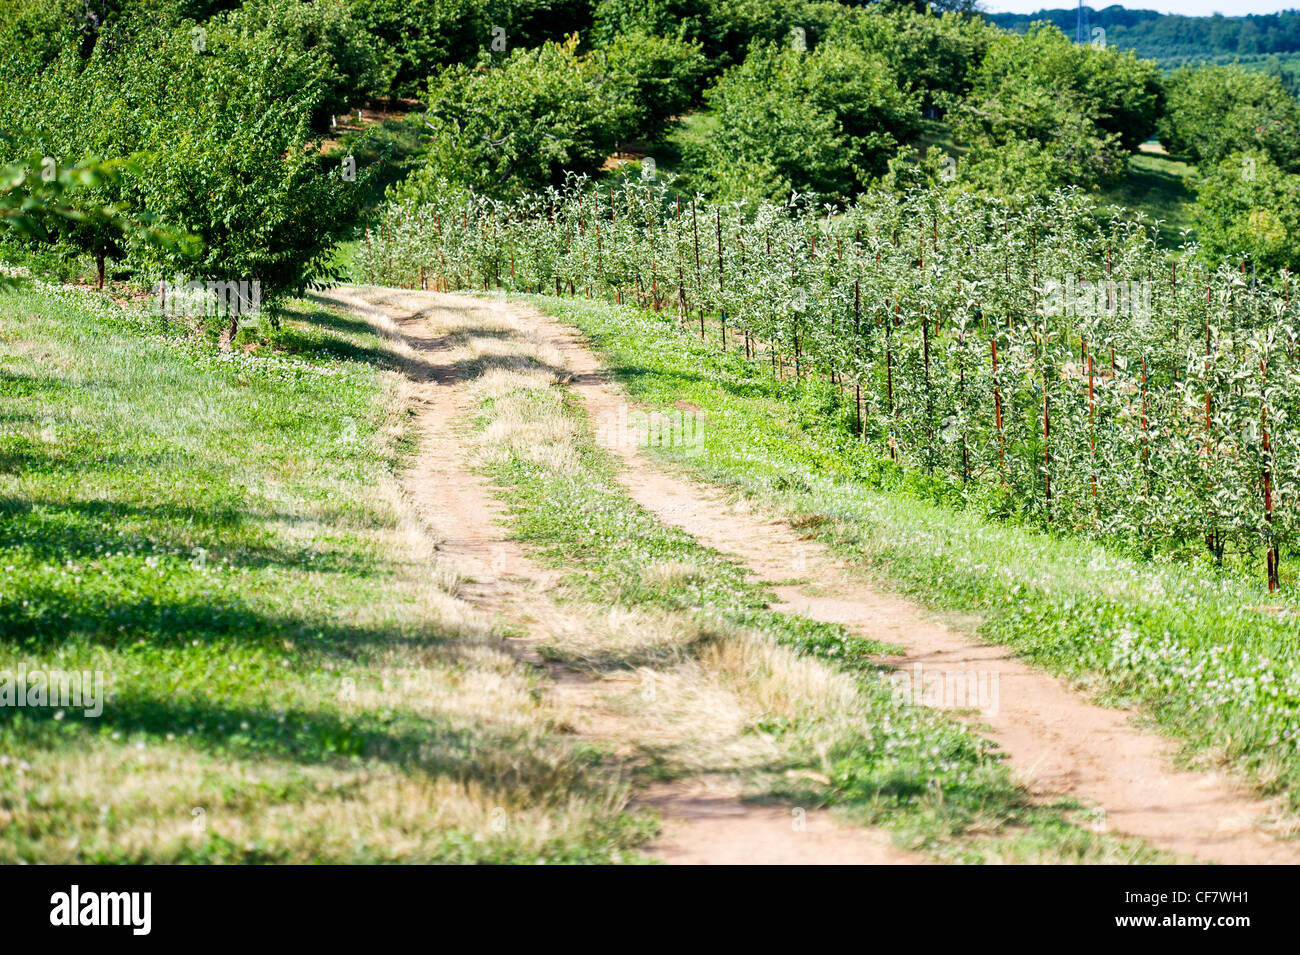 Orchard path stock photos orchard path stock images alamy - Olive garden westminster maryland ...